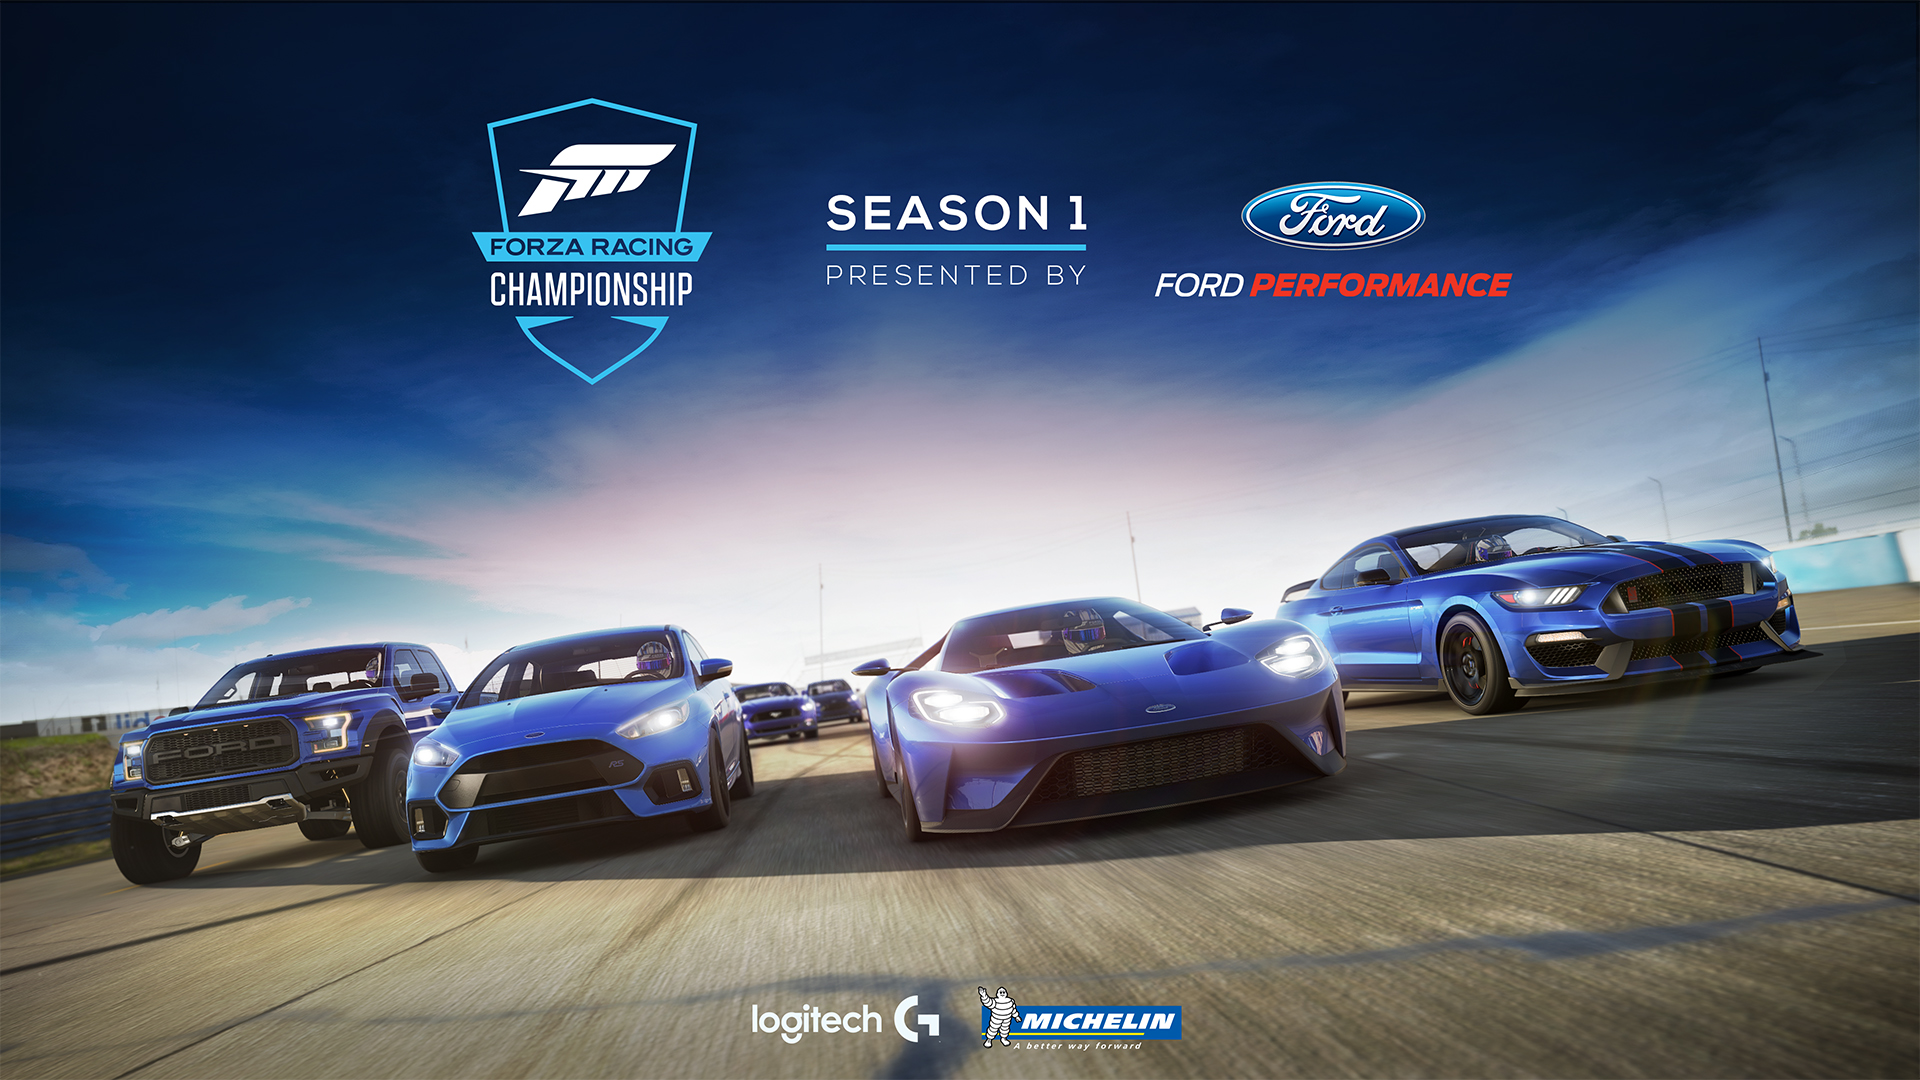 Car Lineup Wallpaper Forza Motorsport Forza Racing Championship Season 1